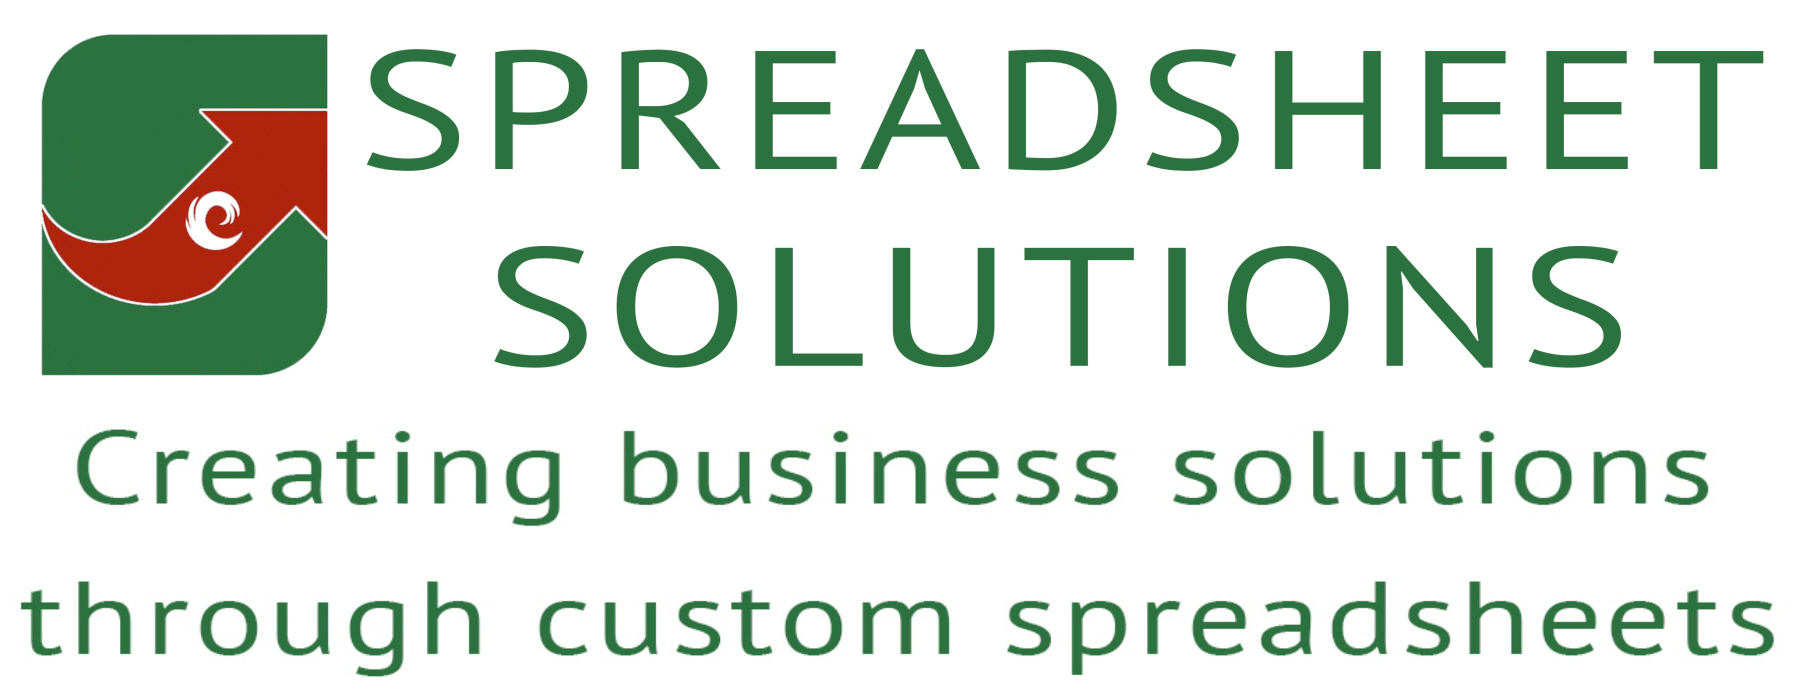 Spreadsheet Solutions Excel With Regard To Spreadsheet Solutions  Spreadsheet Solutions